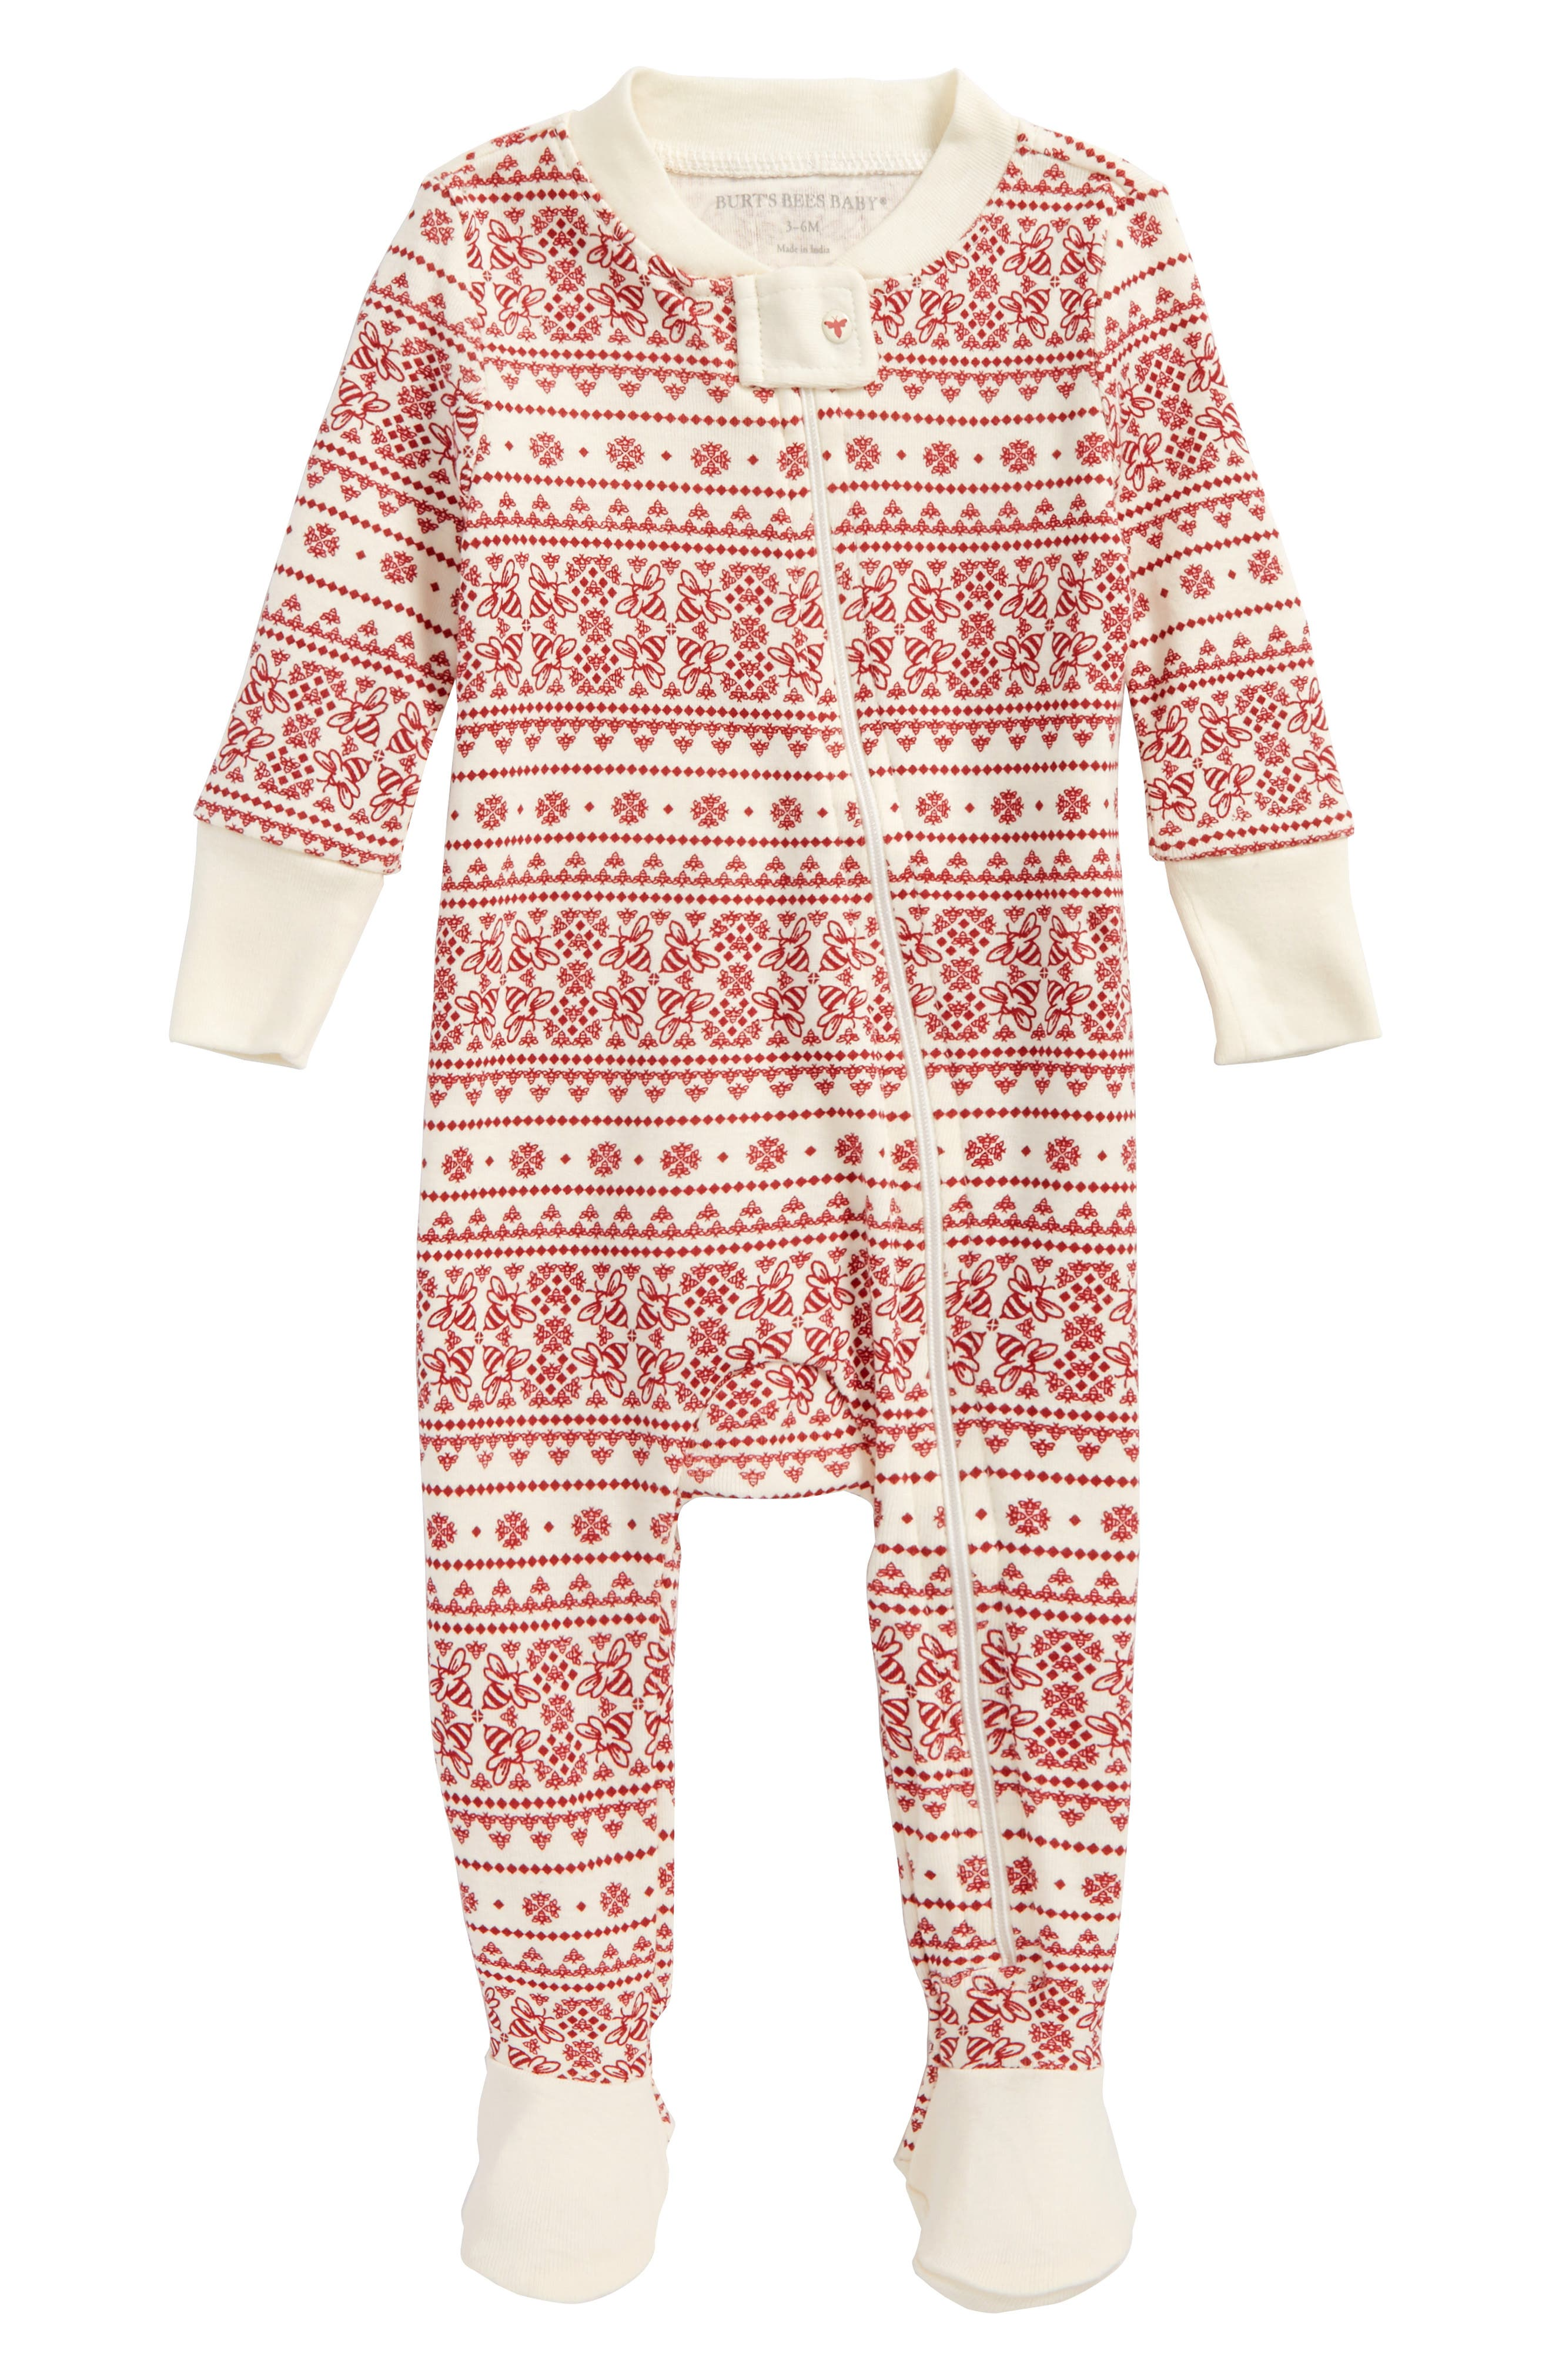 Burt's Bees Baby Fair Isle Fitted One-Piece Footed Pajamas (Baby)